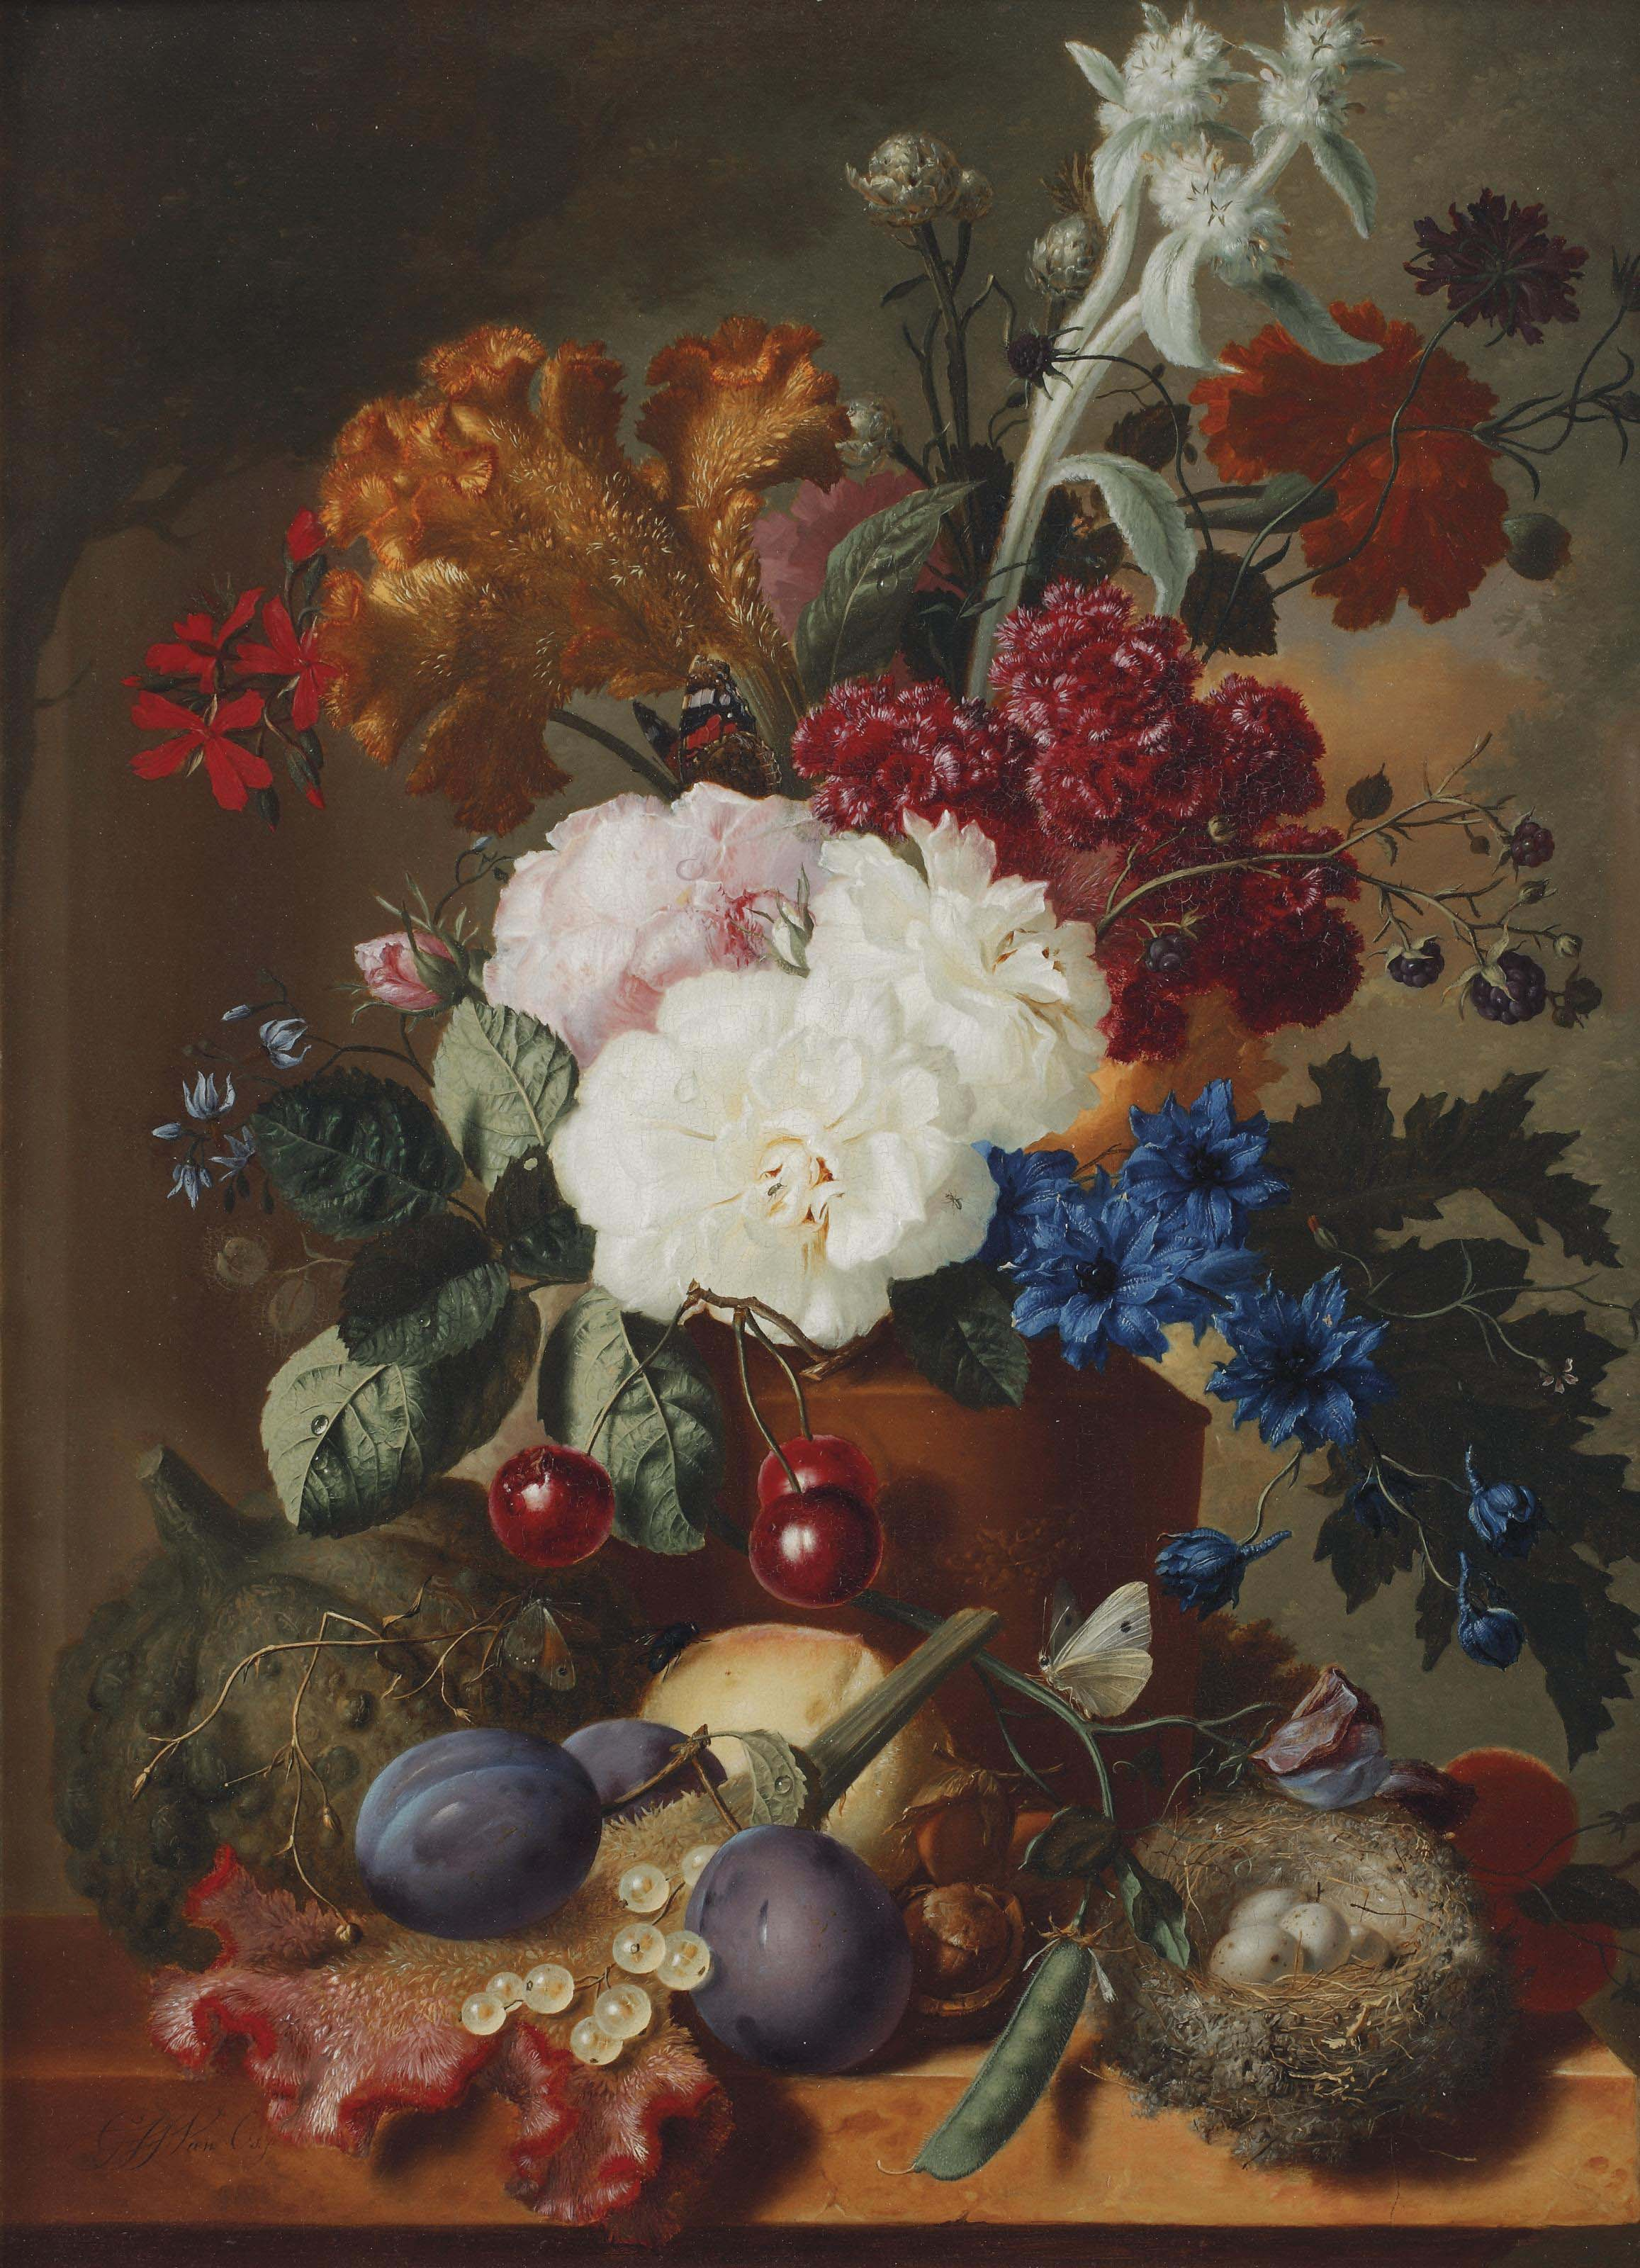 An exuberant flower still life with roses, an orange and red velvet flower and various other flowers in a vase, cherries, plumps, butterflies and a nest with eggs, all on a marble ledge